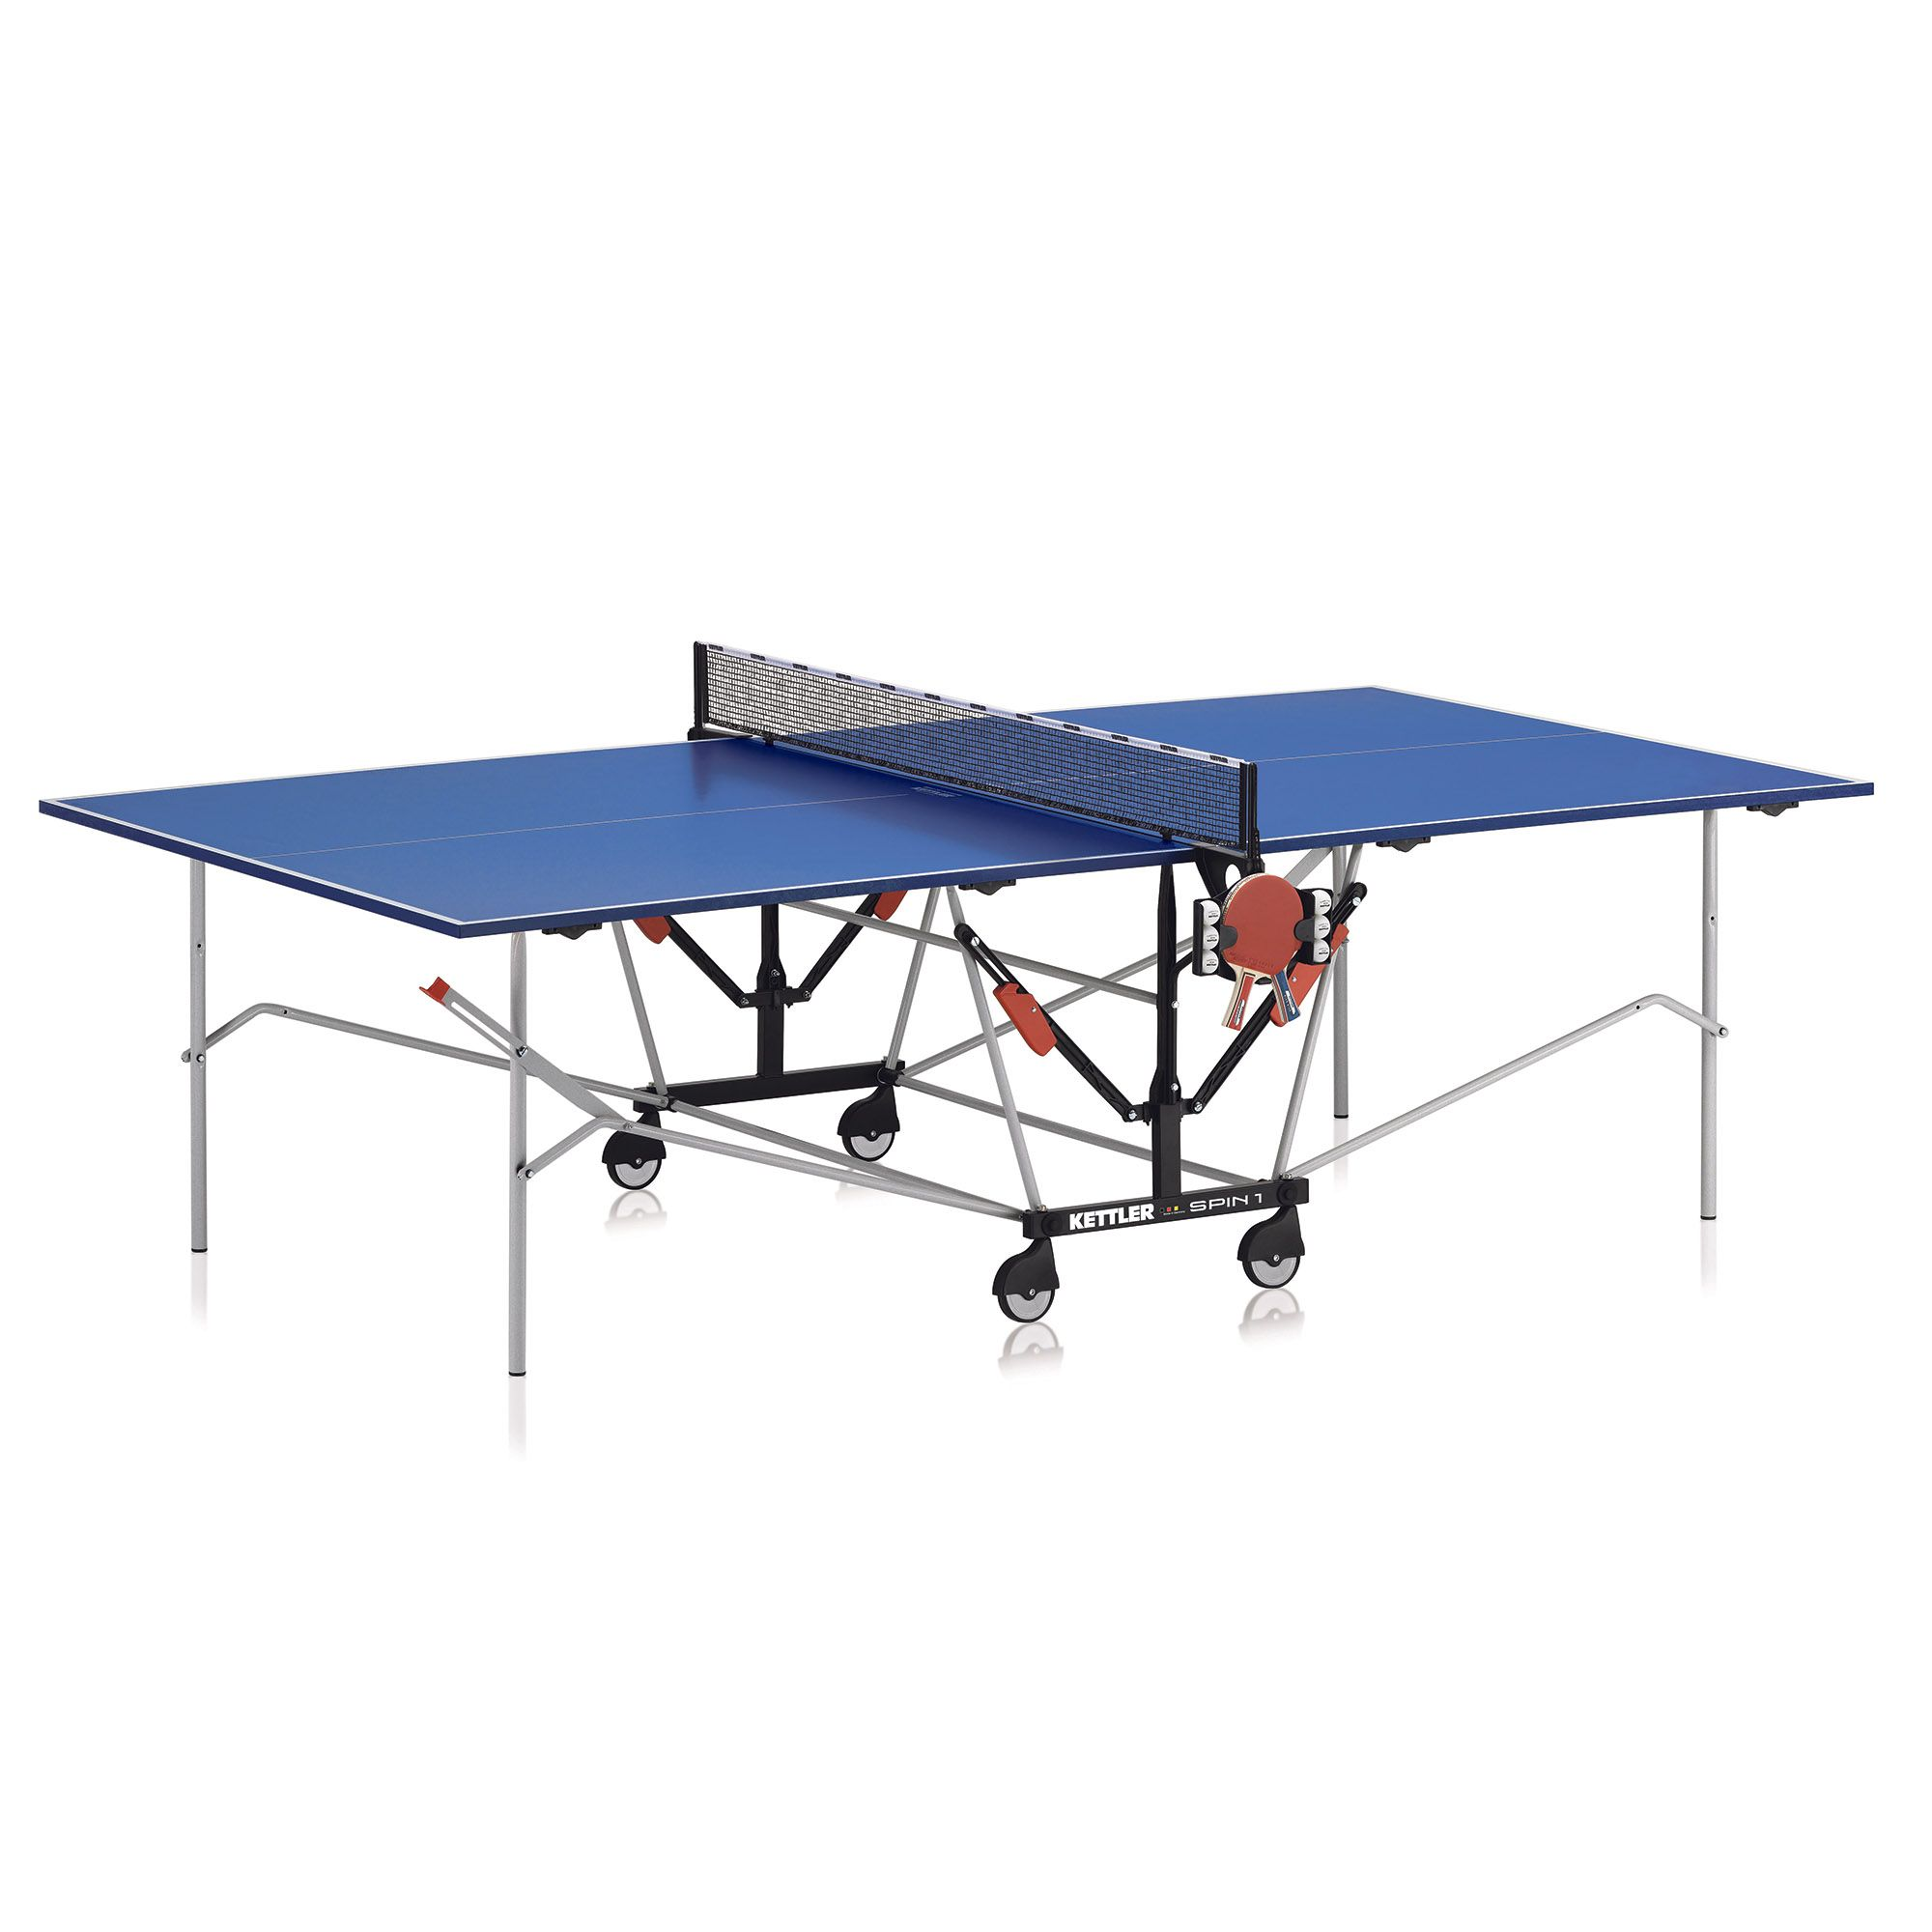 kettler spin 1 0 indoor table tennis table. Black Bedroom Furniture Sets. Home Design Ideas